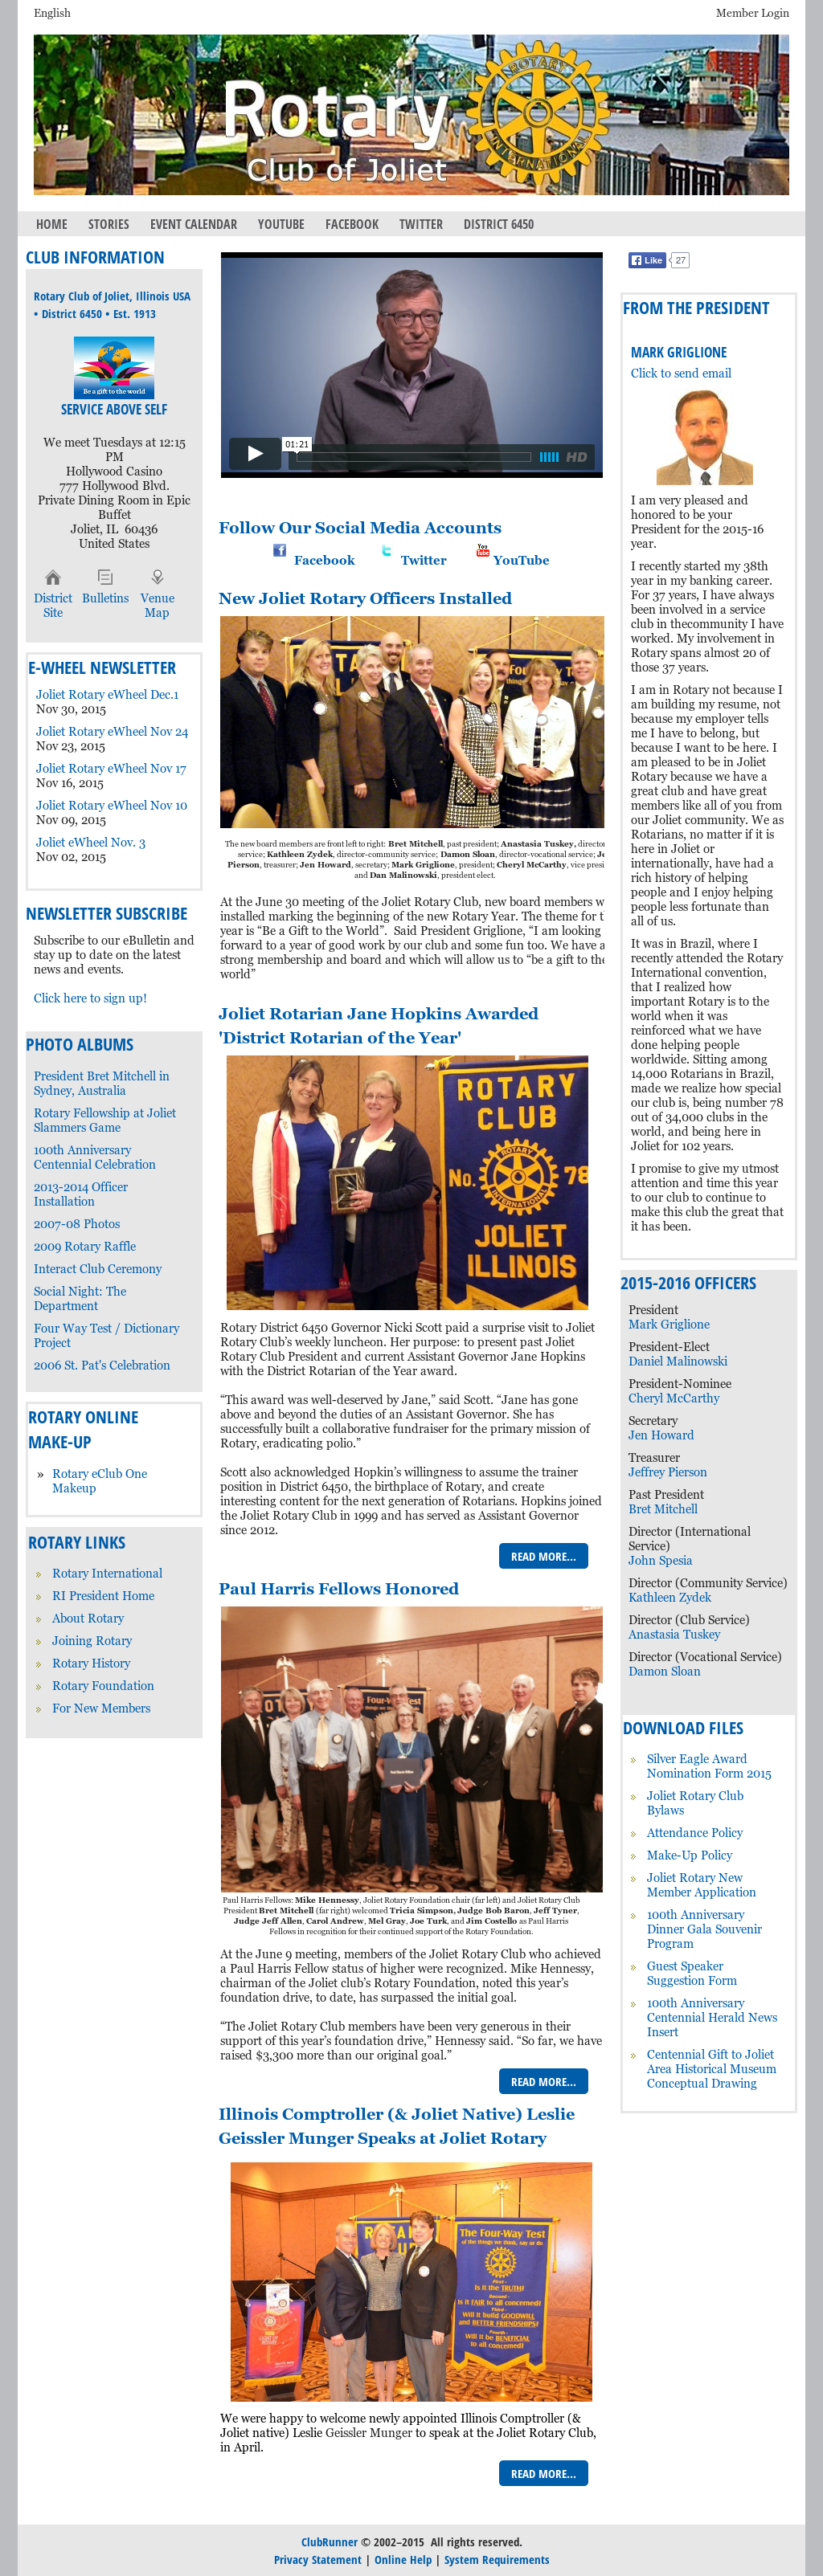 Rotary Club Of Joliet, Il Competitors, Revenue and Employees - Owler